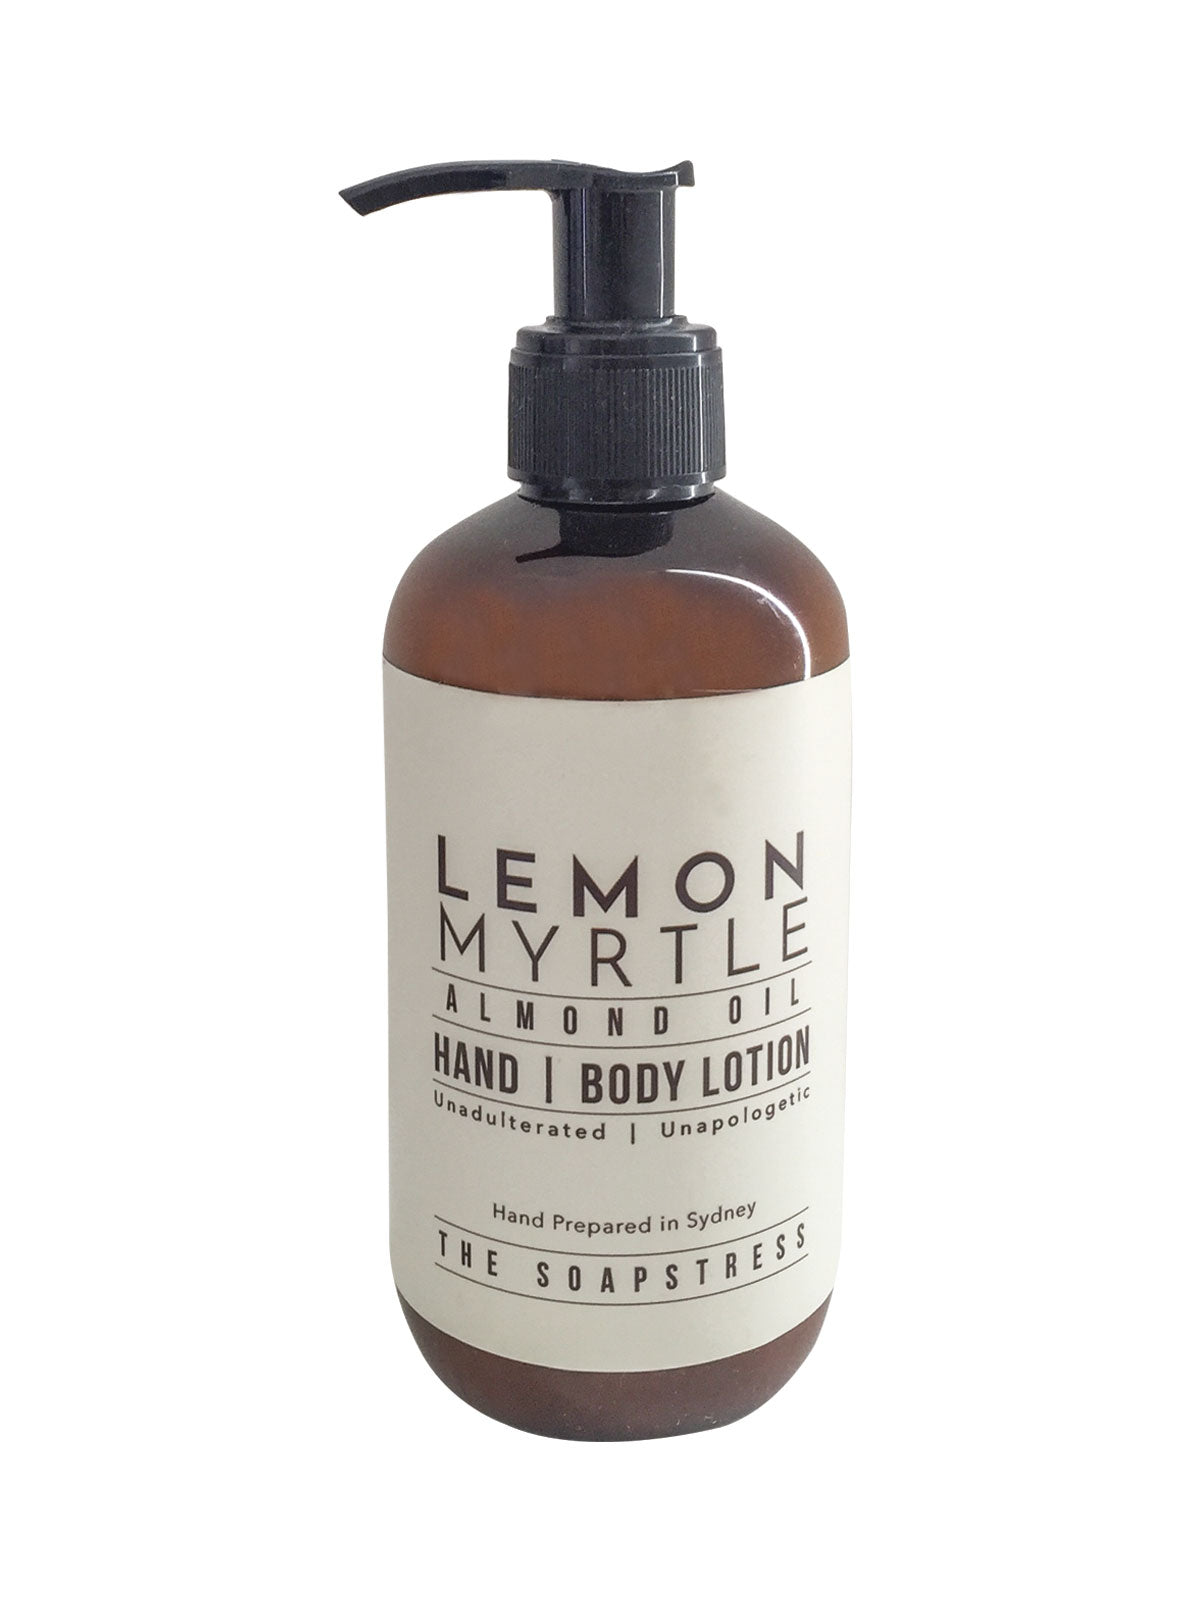 LEMON MYRTLE HAND AND BODY LOTION